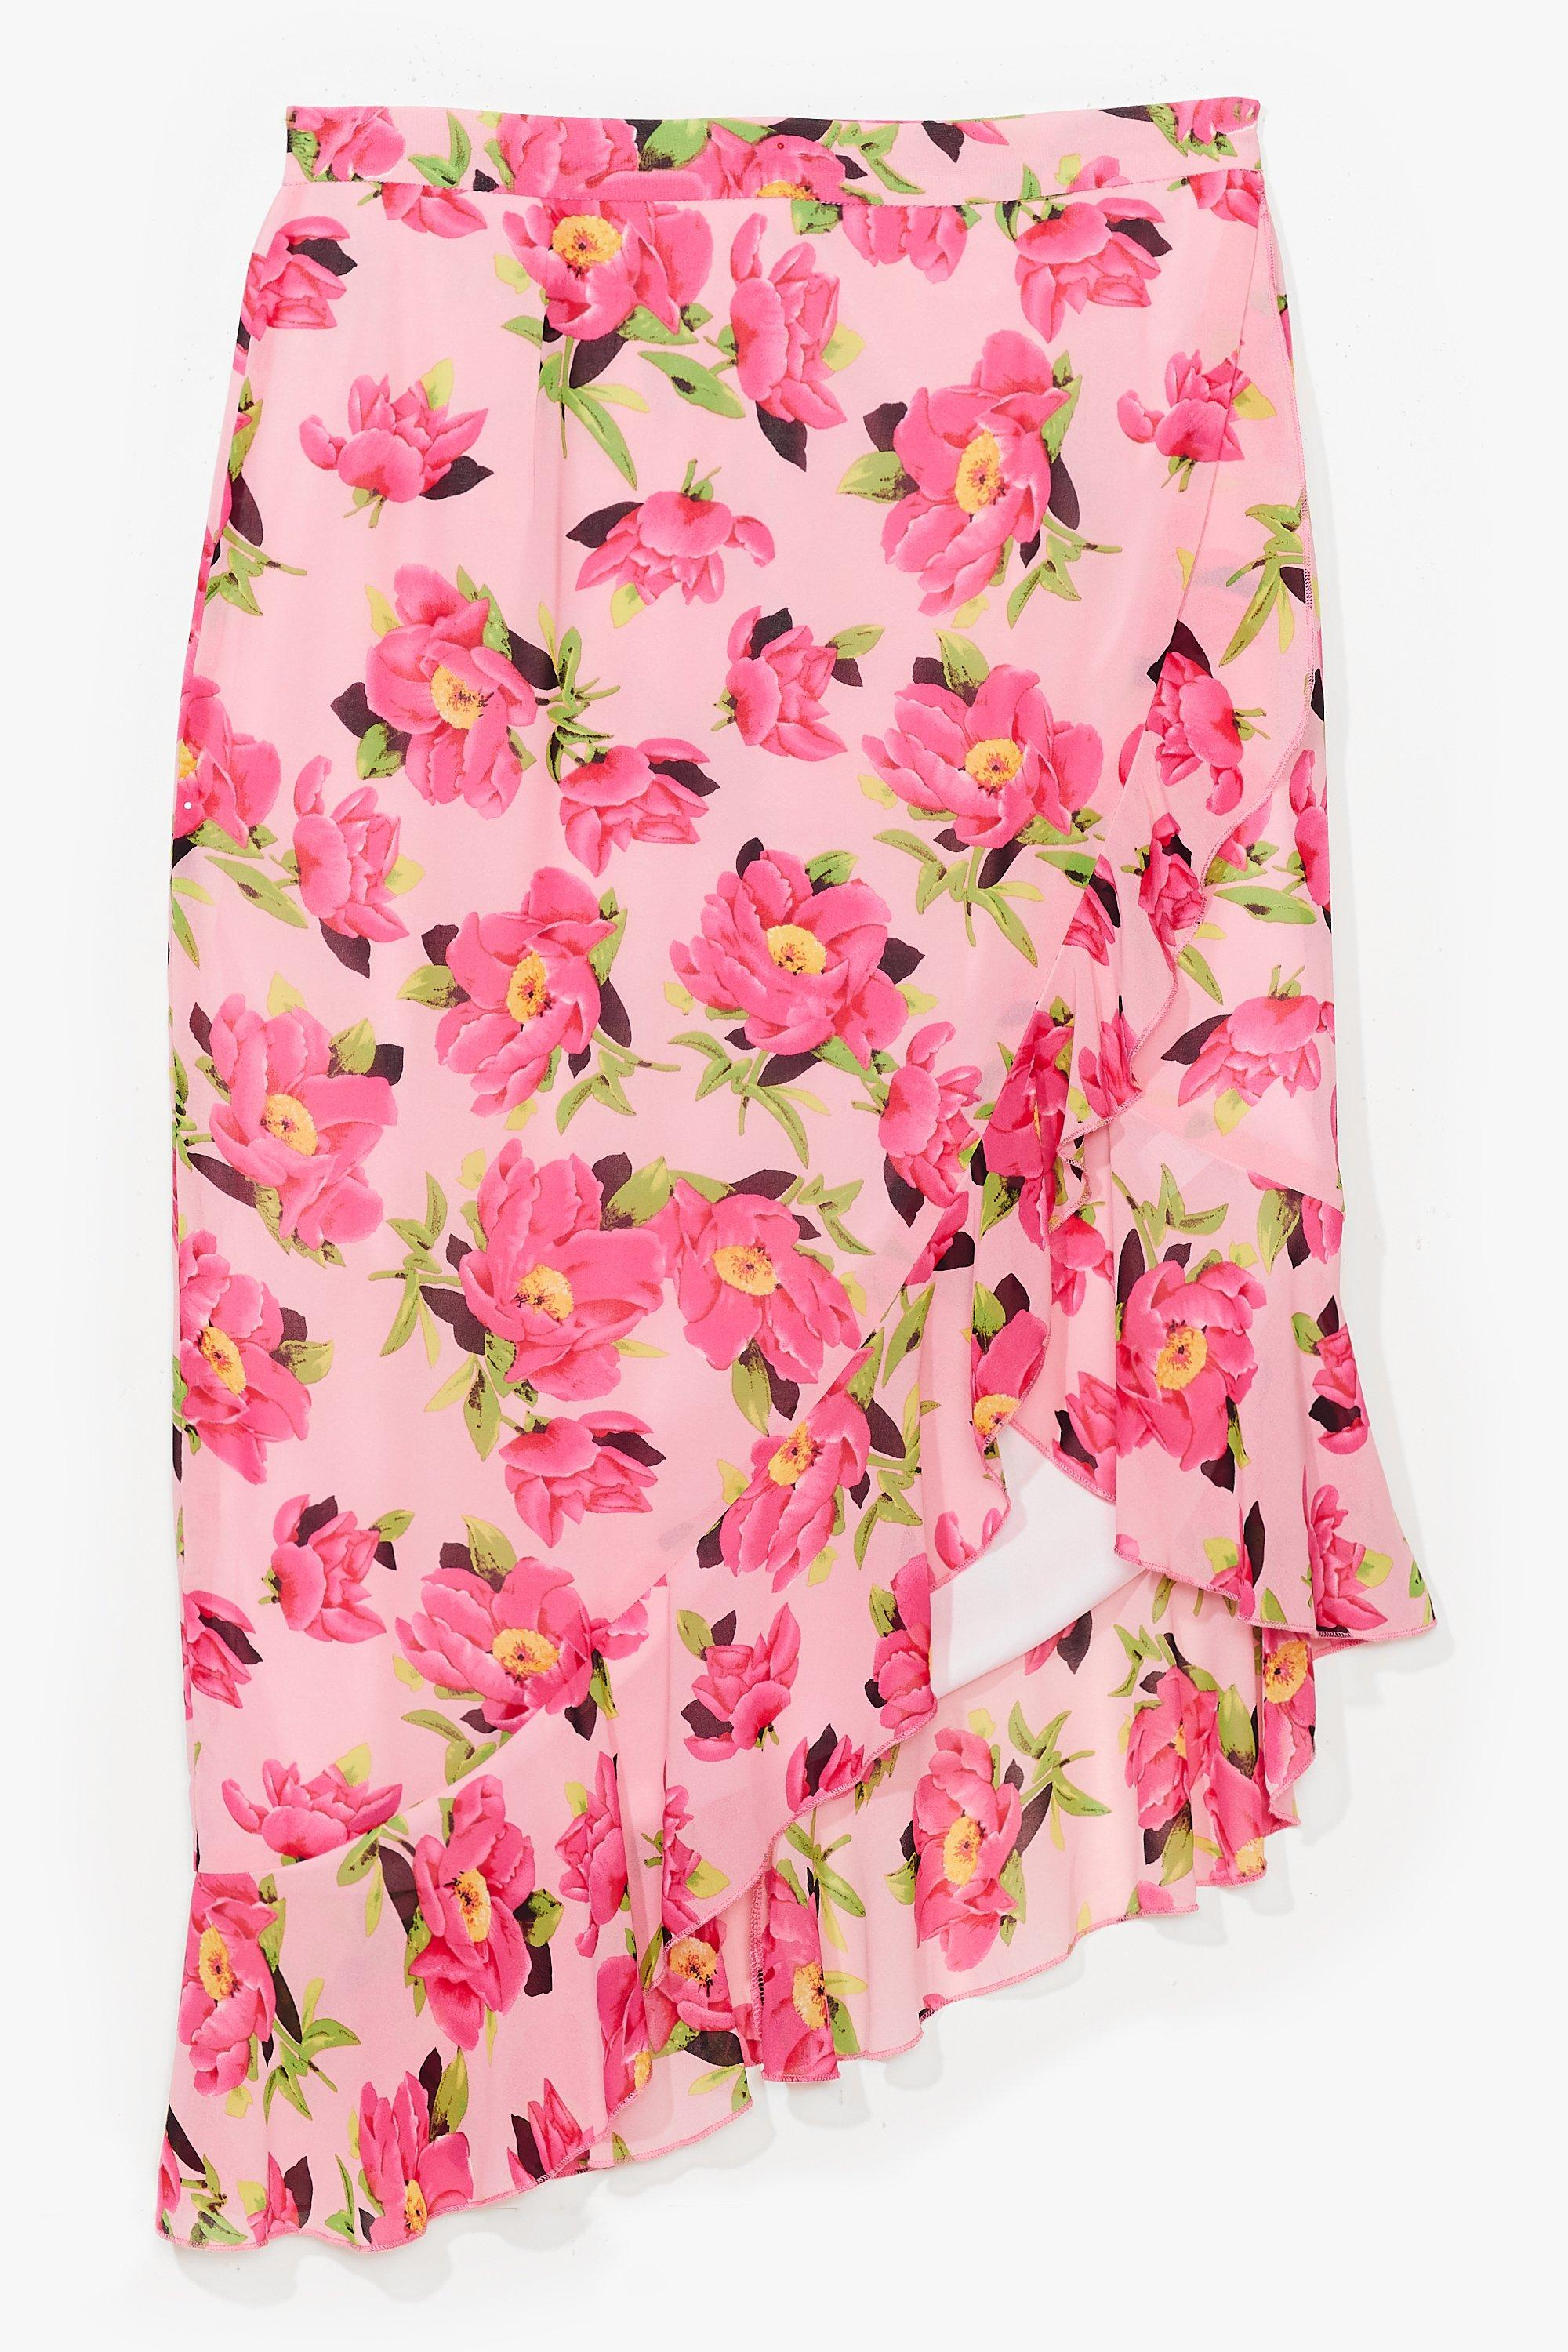 Frill Don't Care Plus Floral Skirt 14